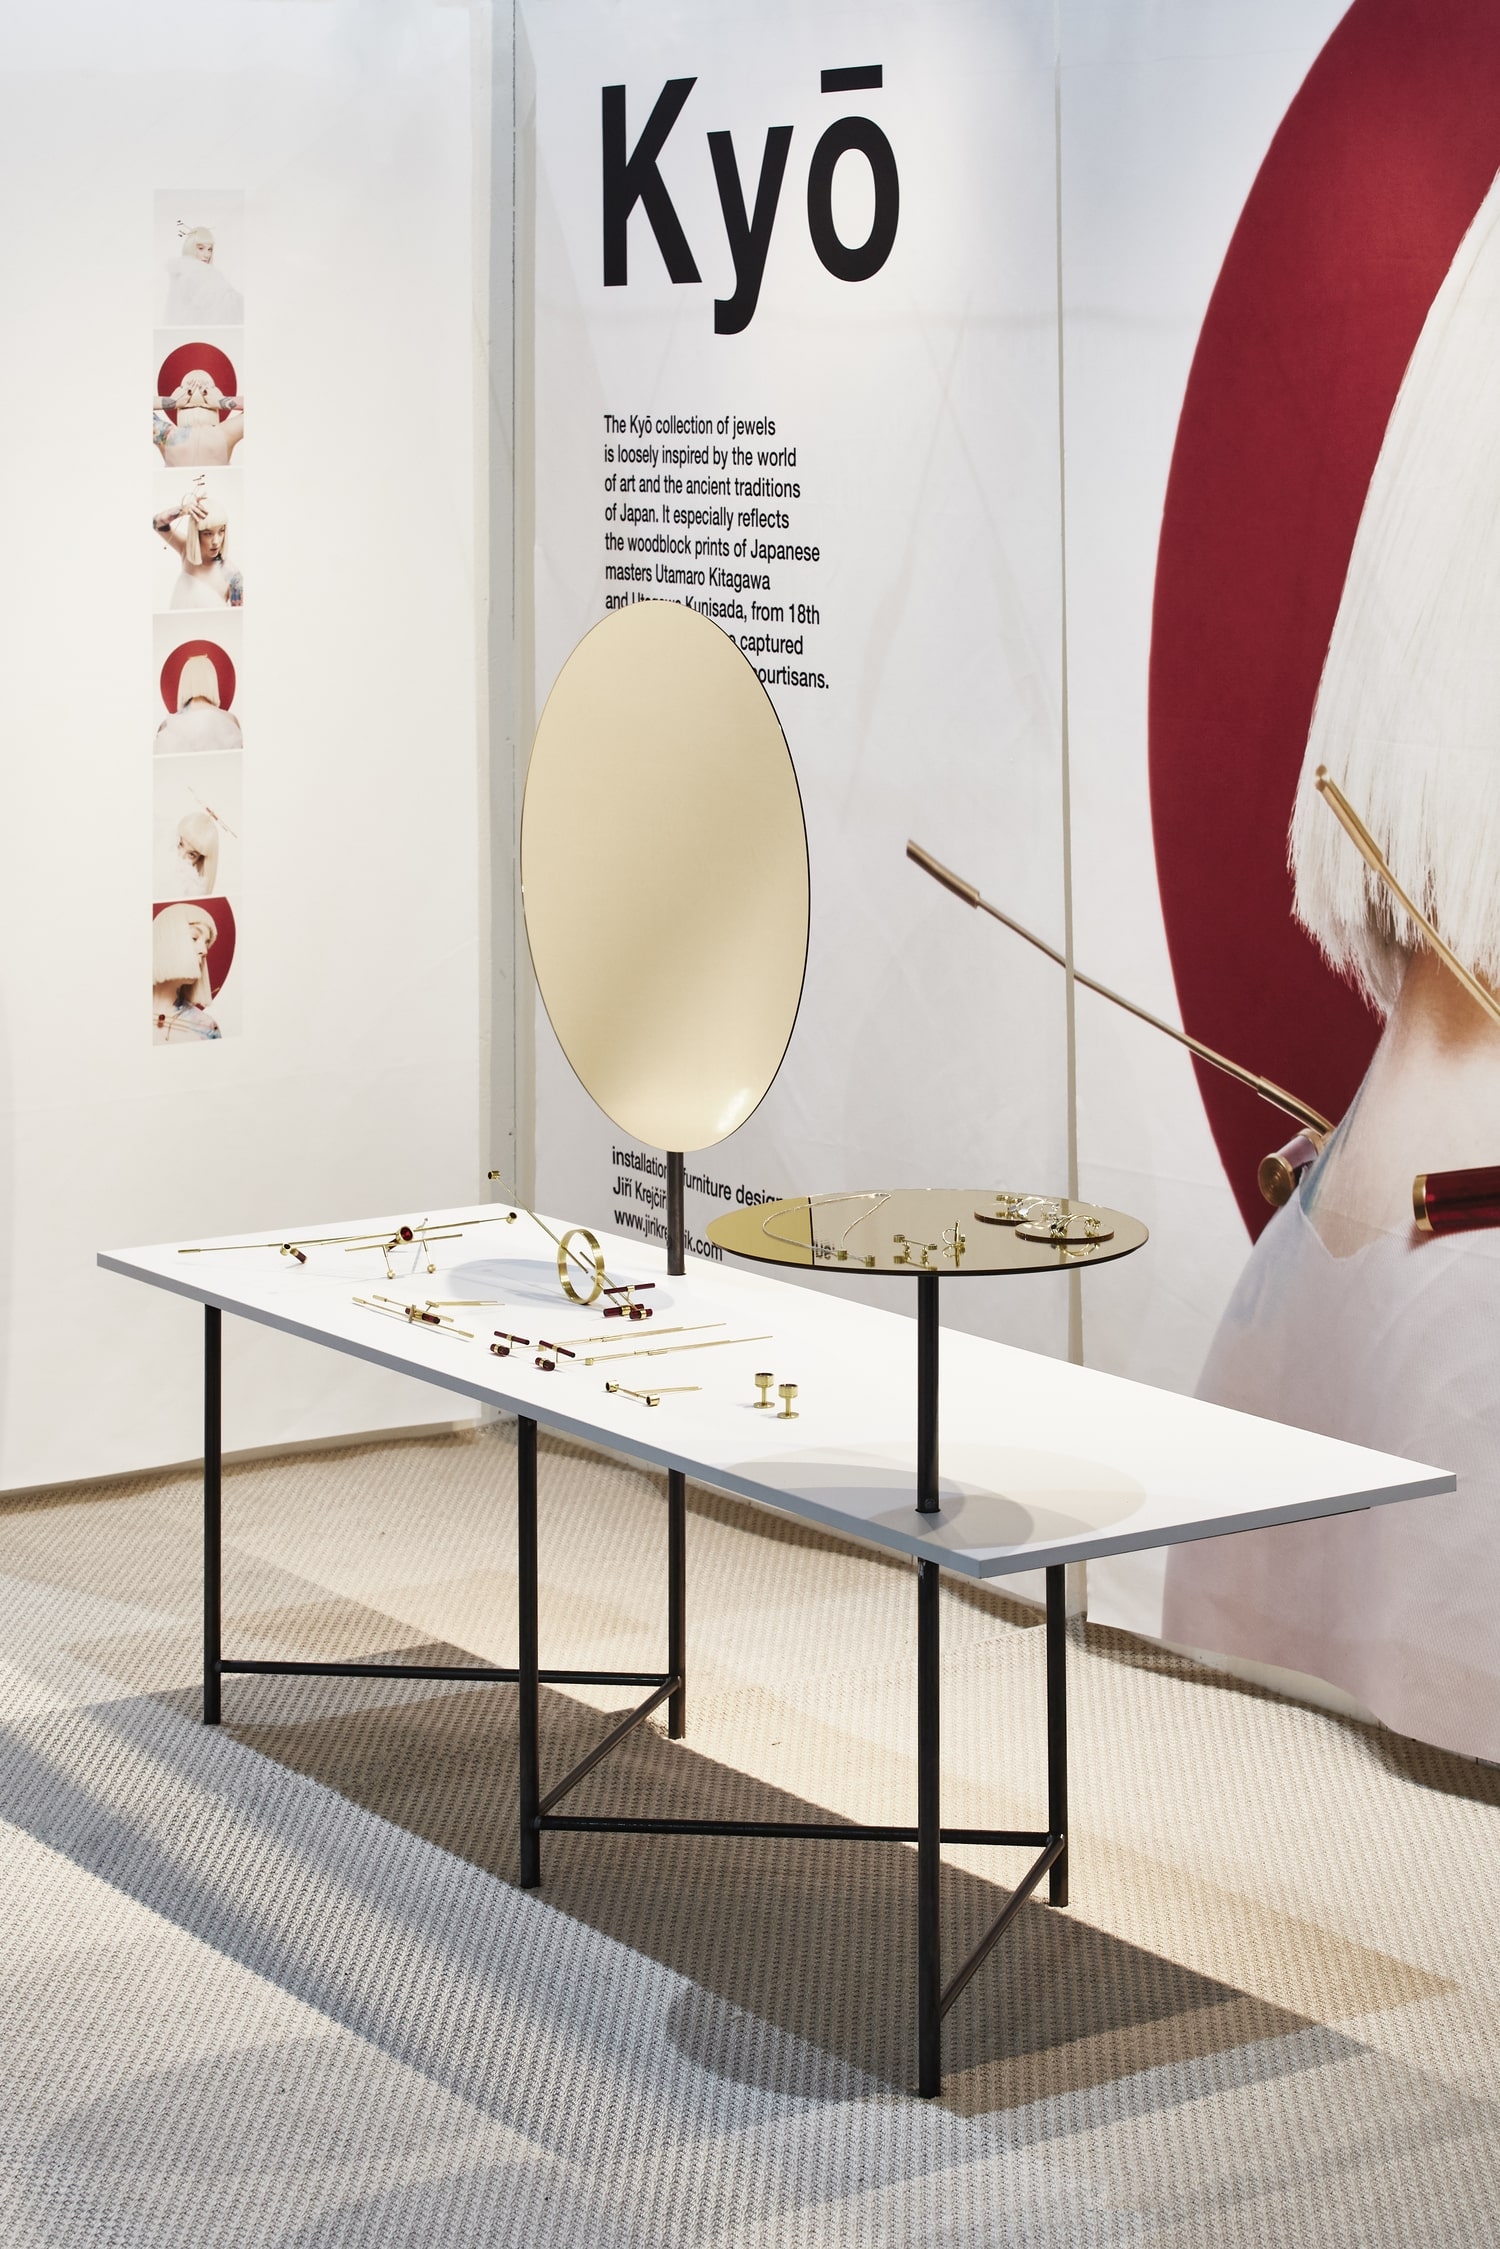 kyo-collection-jewelry-katerina-reich-installation-and-mirror-table-for-designblok-2018-jiri-krejcirik-